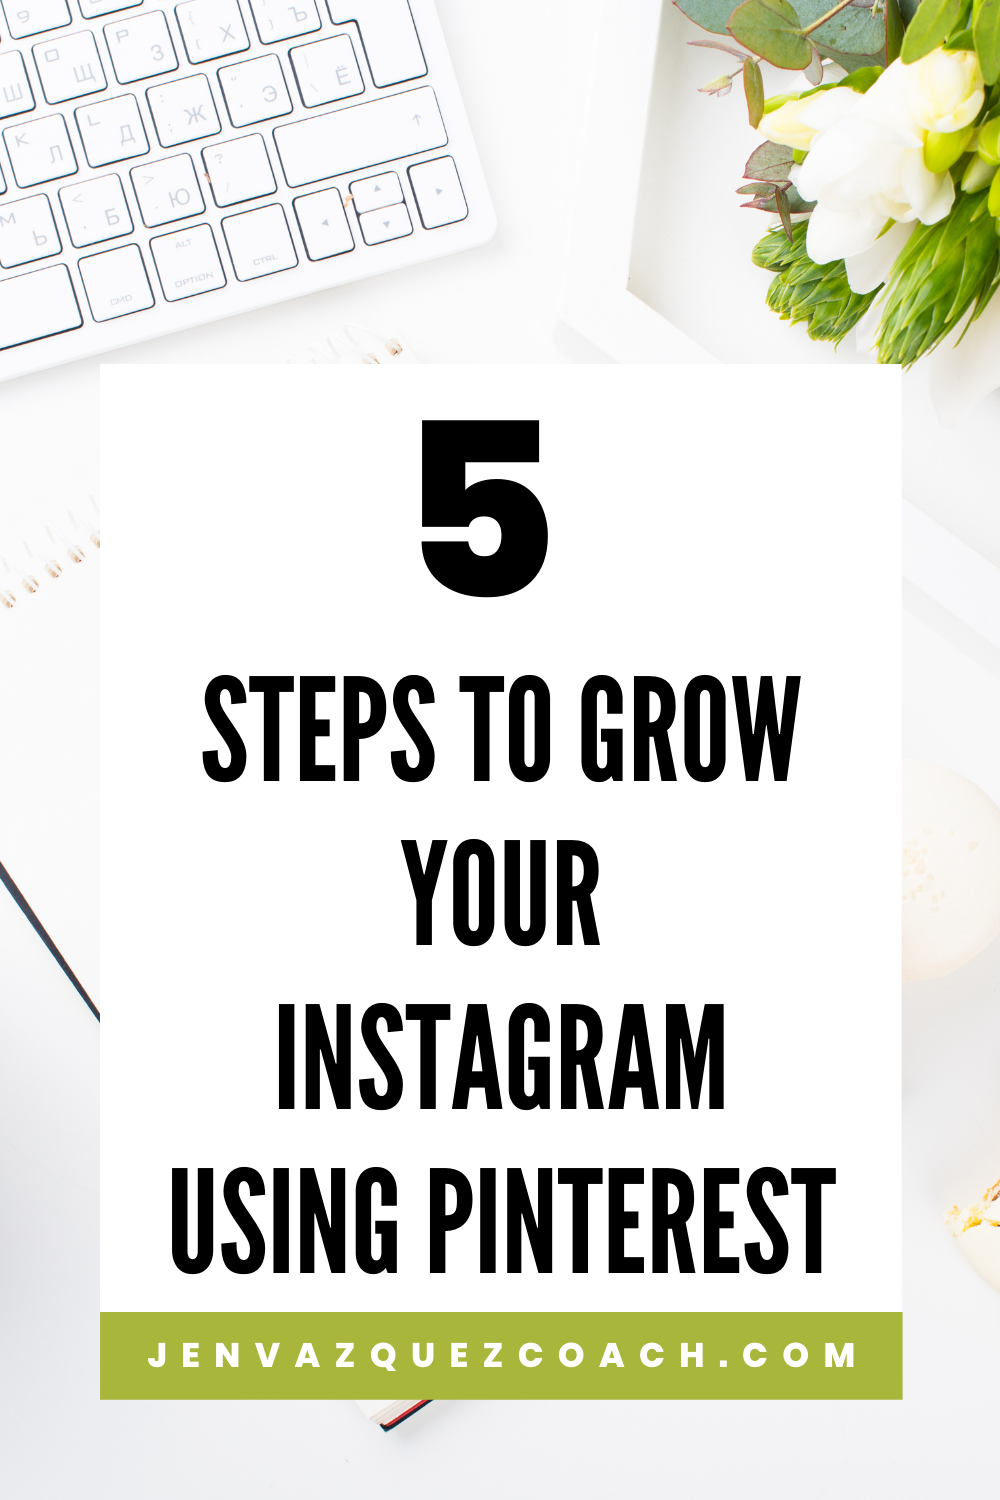 5 Steps to Grow Your Instagram Using Pinterest4